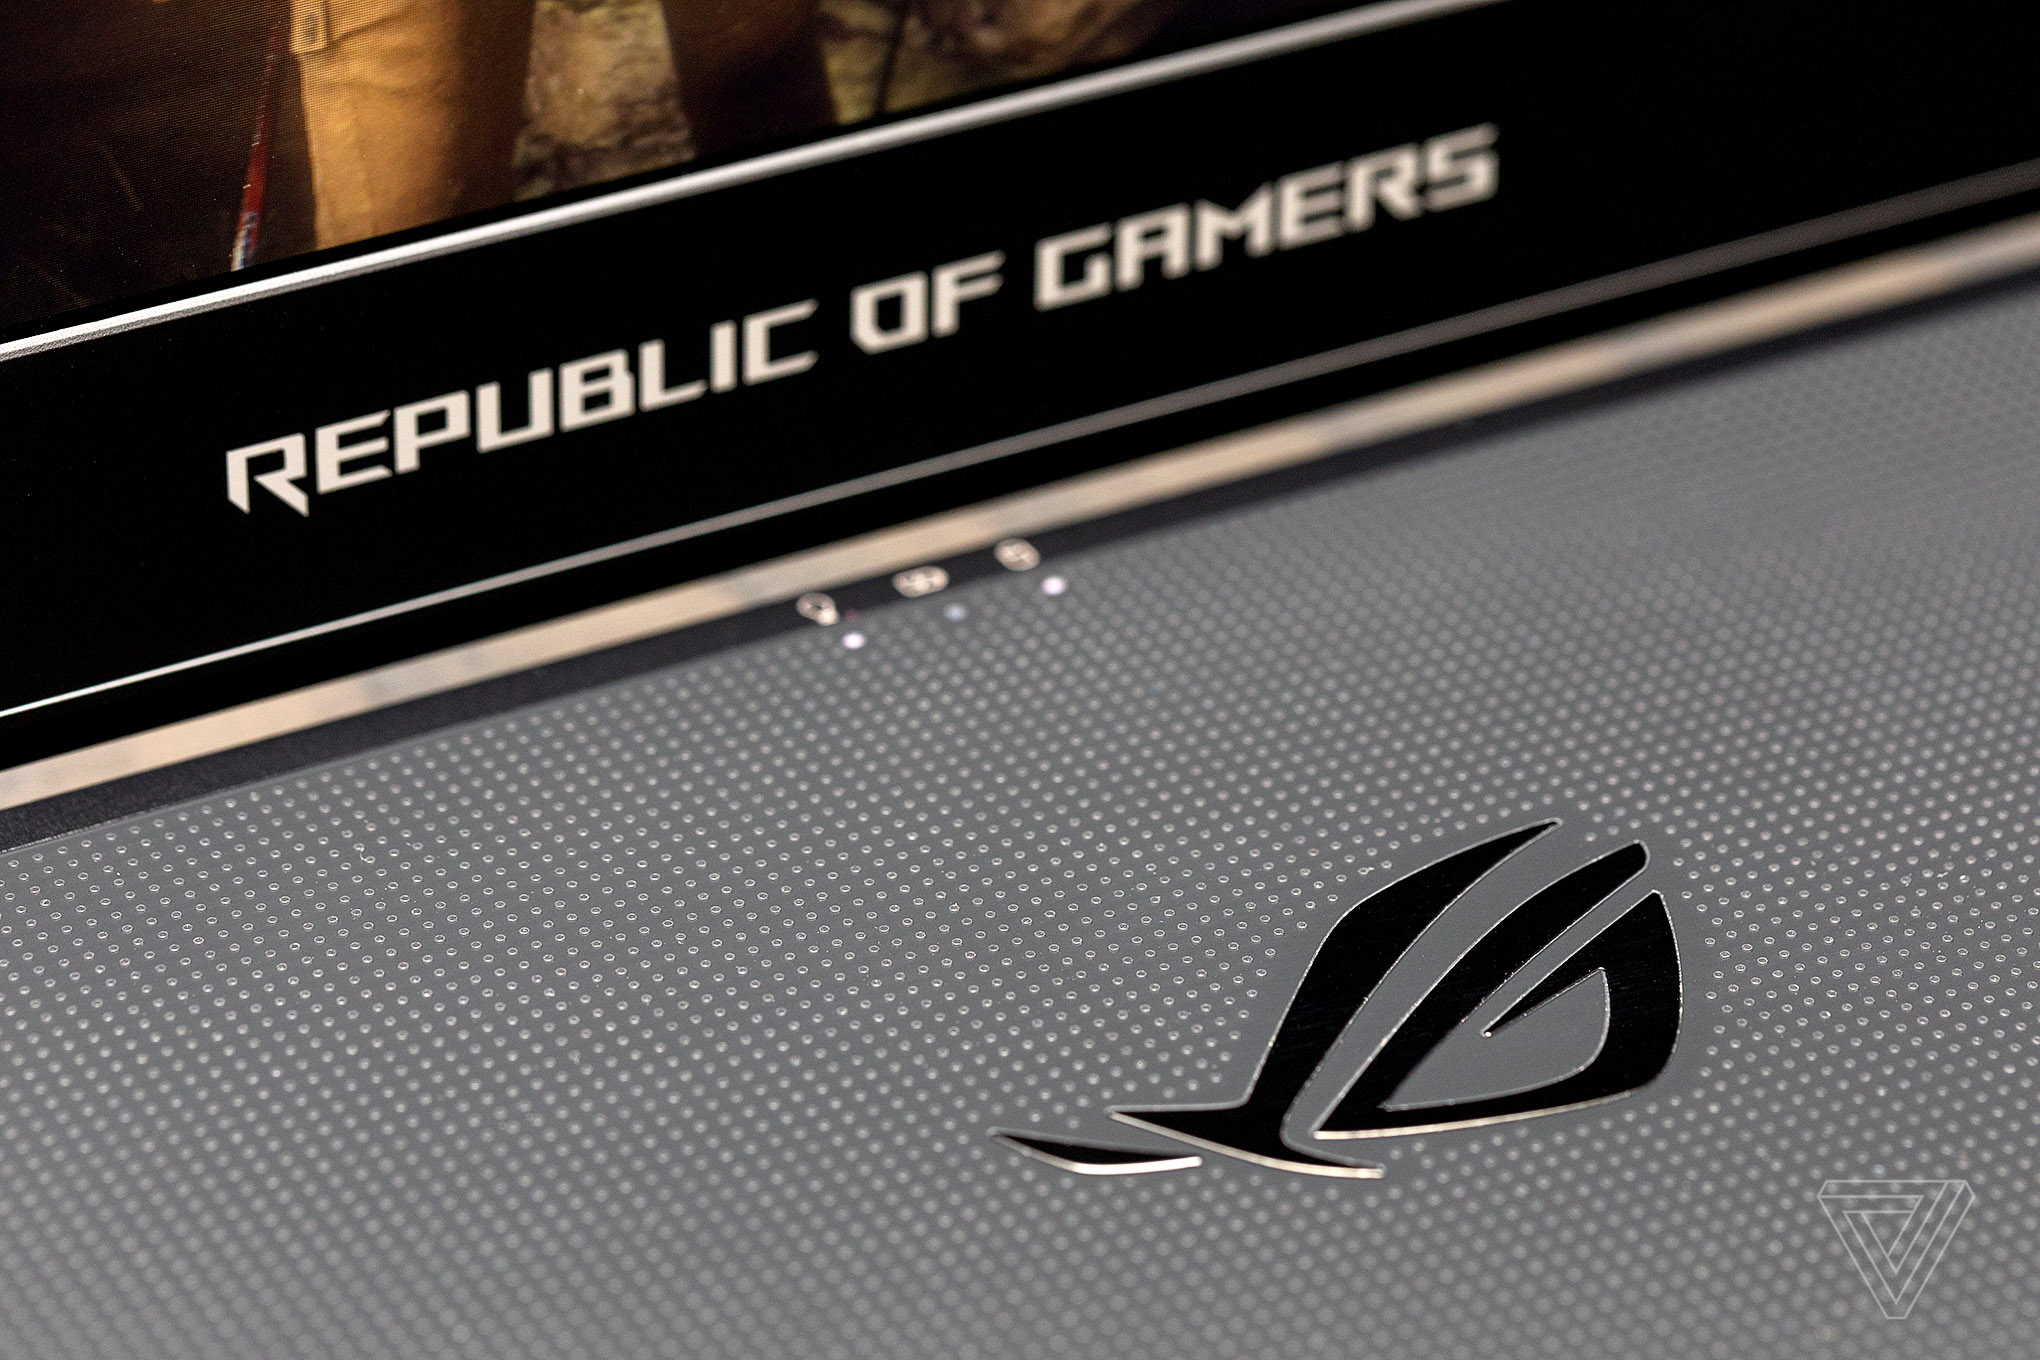 itech-dude-contents-akrales_170818_1922_0057 Asus ROG Zephyrus review: great at gaming, but not much else | iTech Dude - The Technology Blog